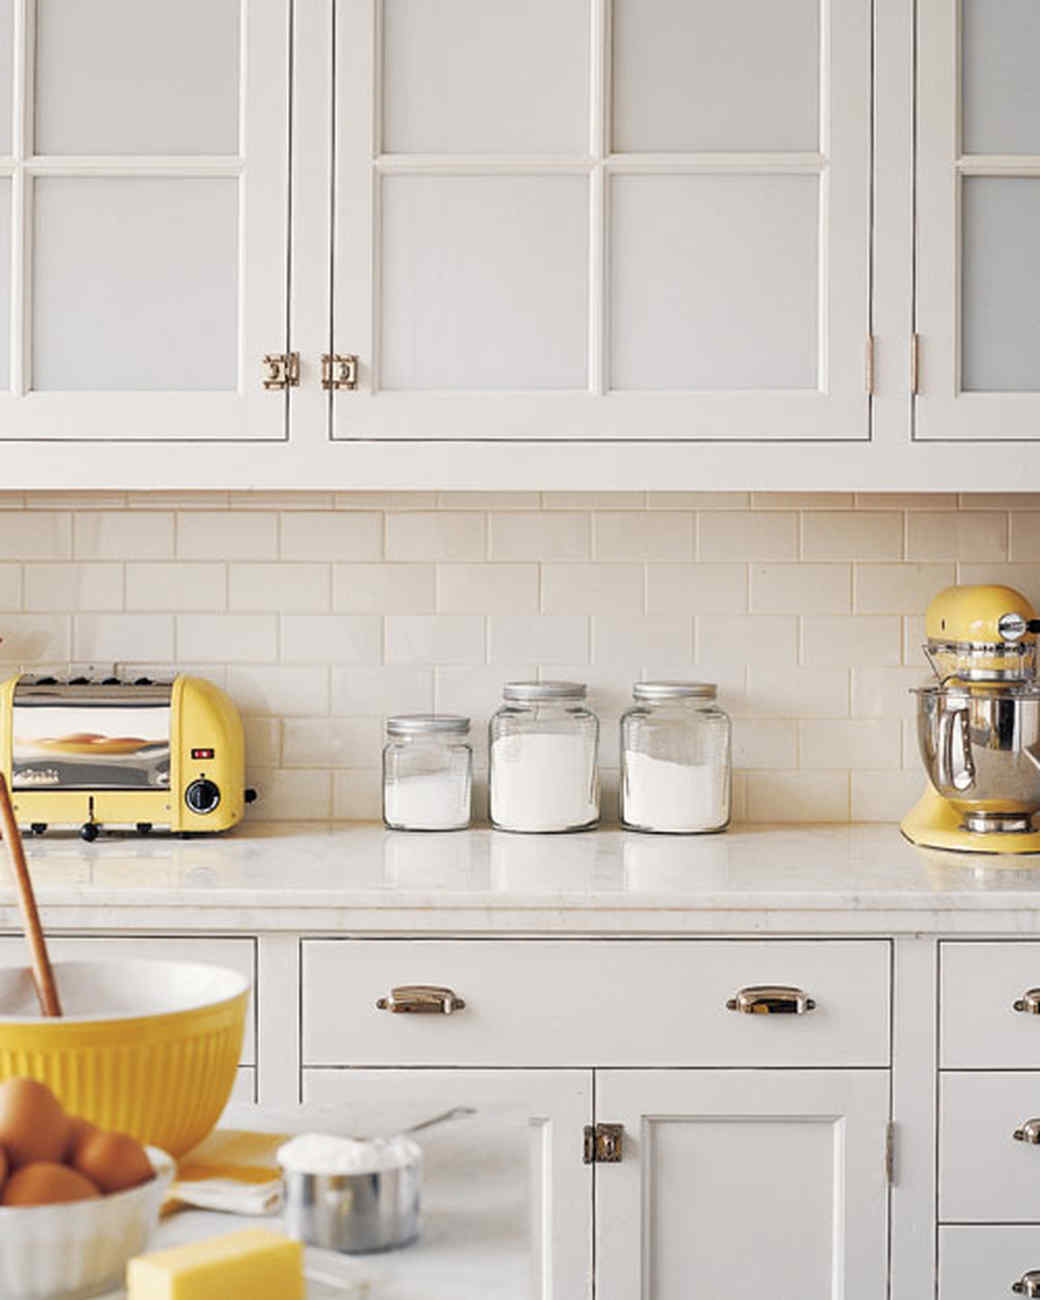 Organize Your Kitchen Cabinets in 11 Easy Steps. 1 of 10